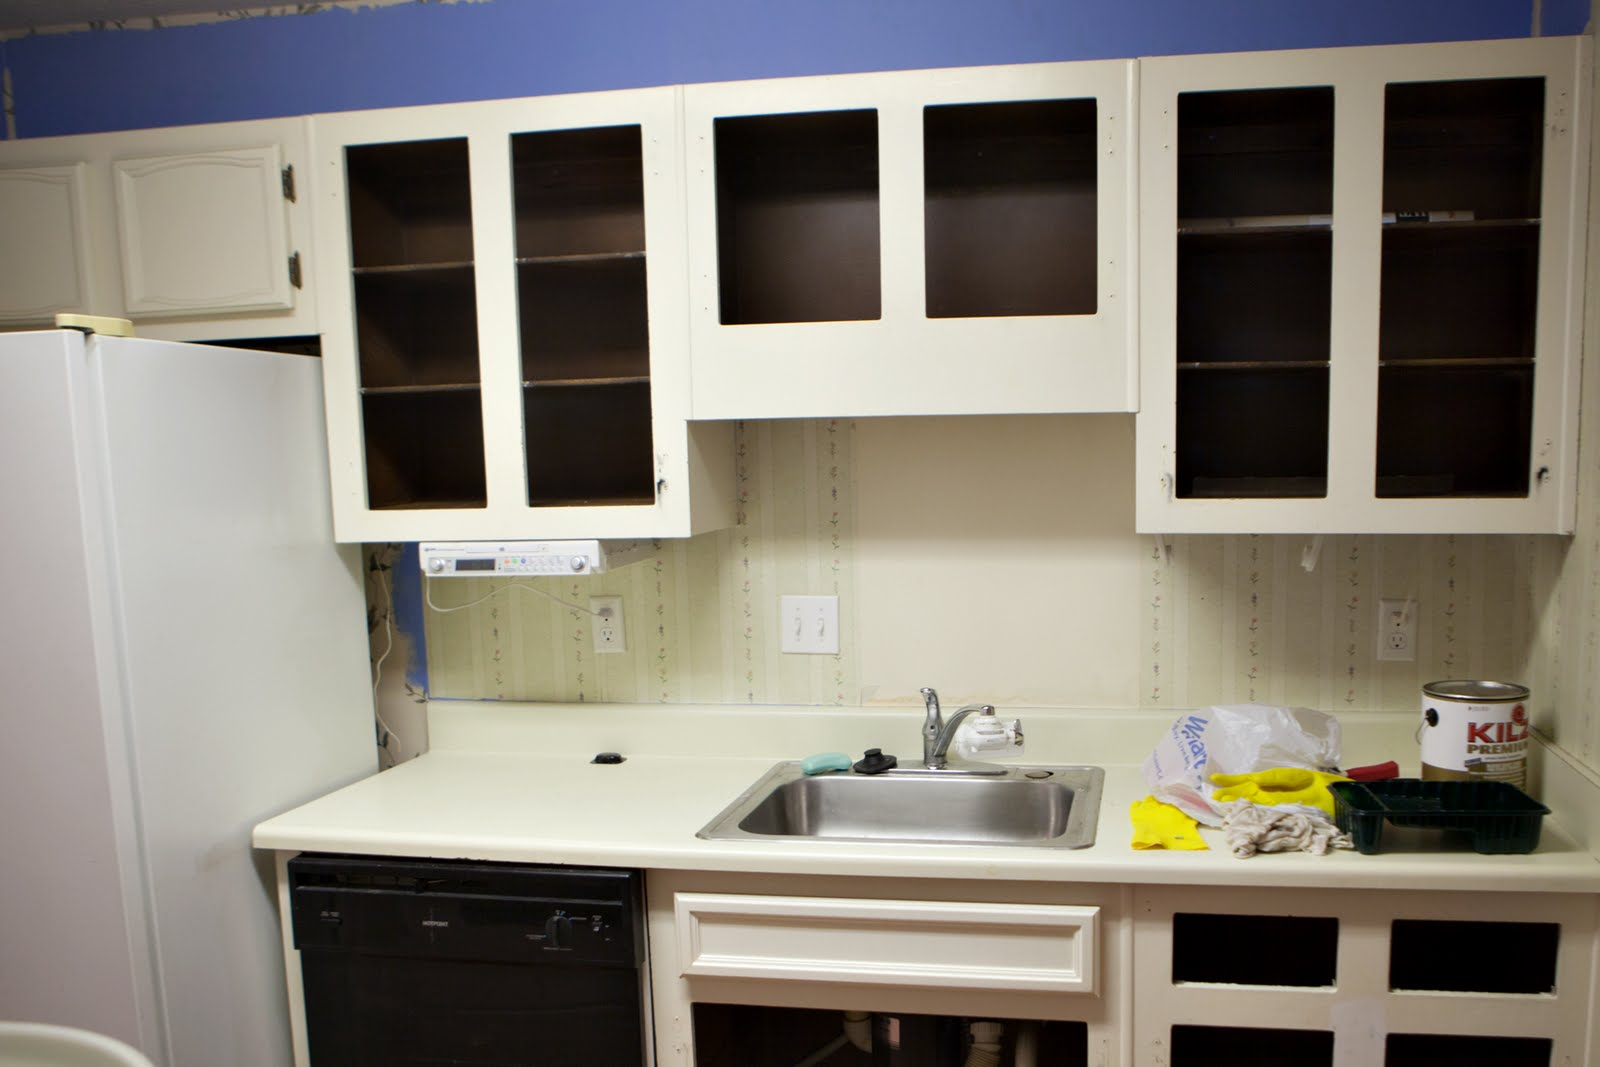 I'll do it my damn self: Painting cabinets - inside and out